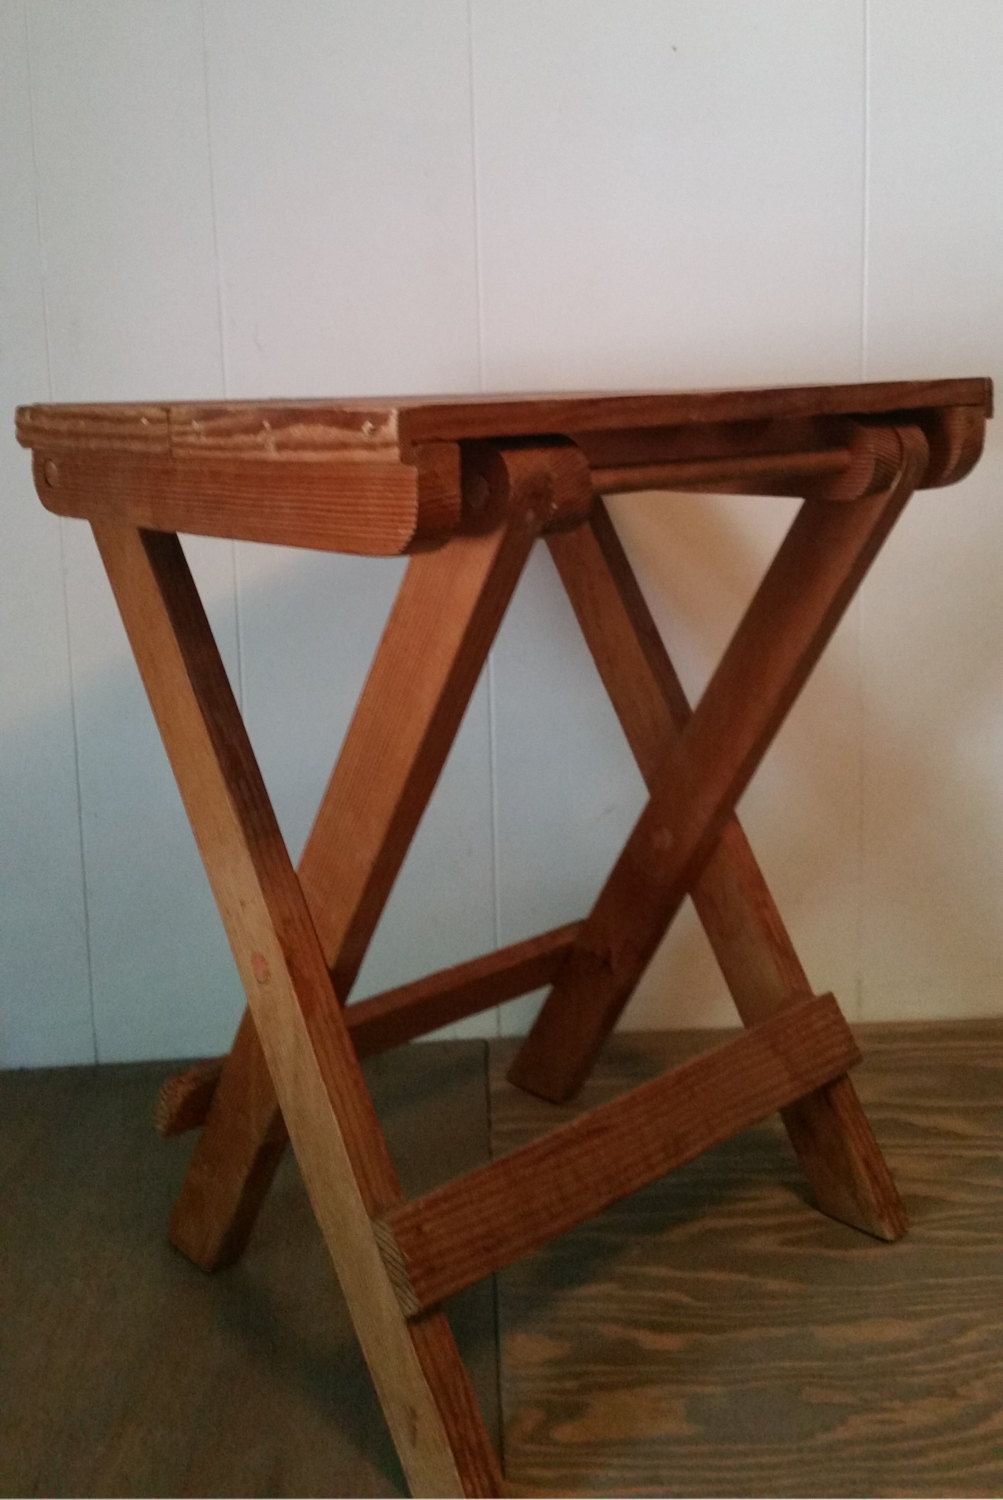 Vintage Camping Chair - Vintage folding wood camp table wooden camp table camping table little folding table camping supply camp table rustic cabin table